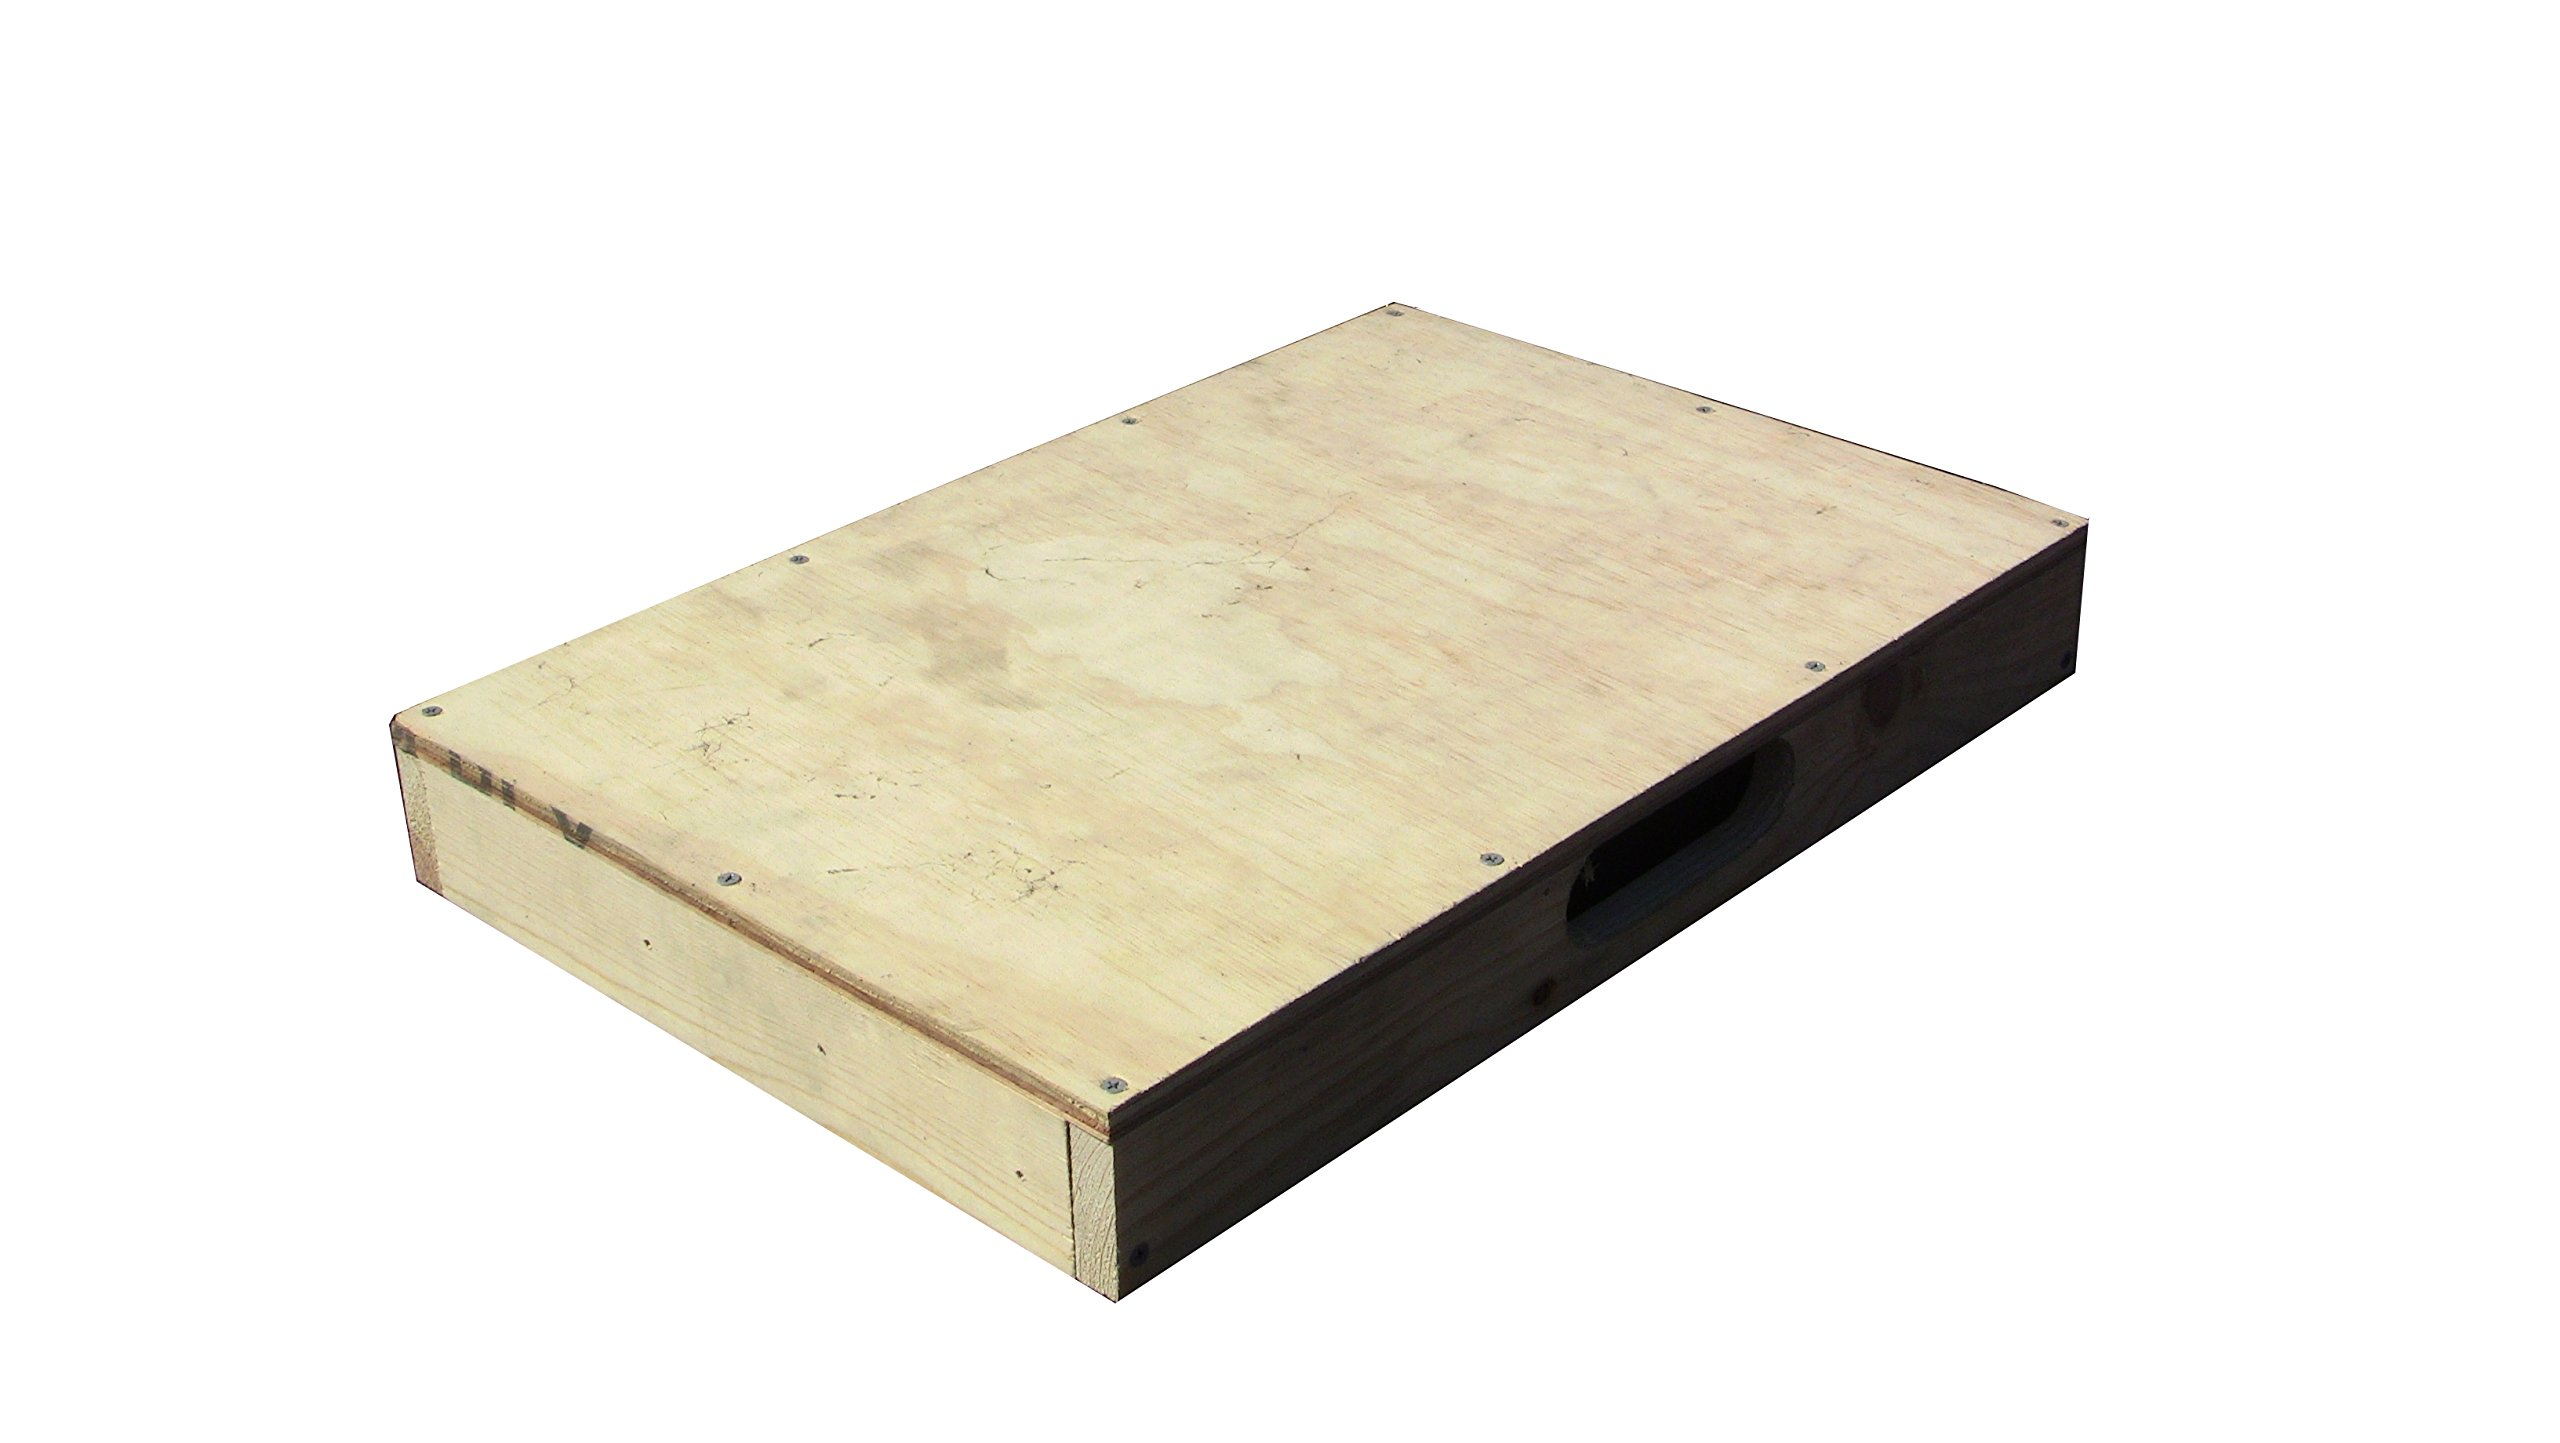 Dance Board Standard for Clogging Tap Flat Footing w/handle 3 x 24 x 16 in. by ASPS